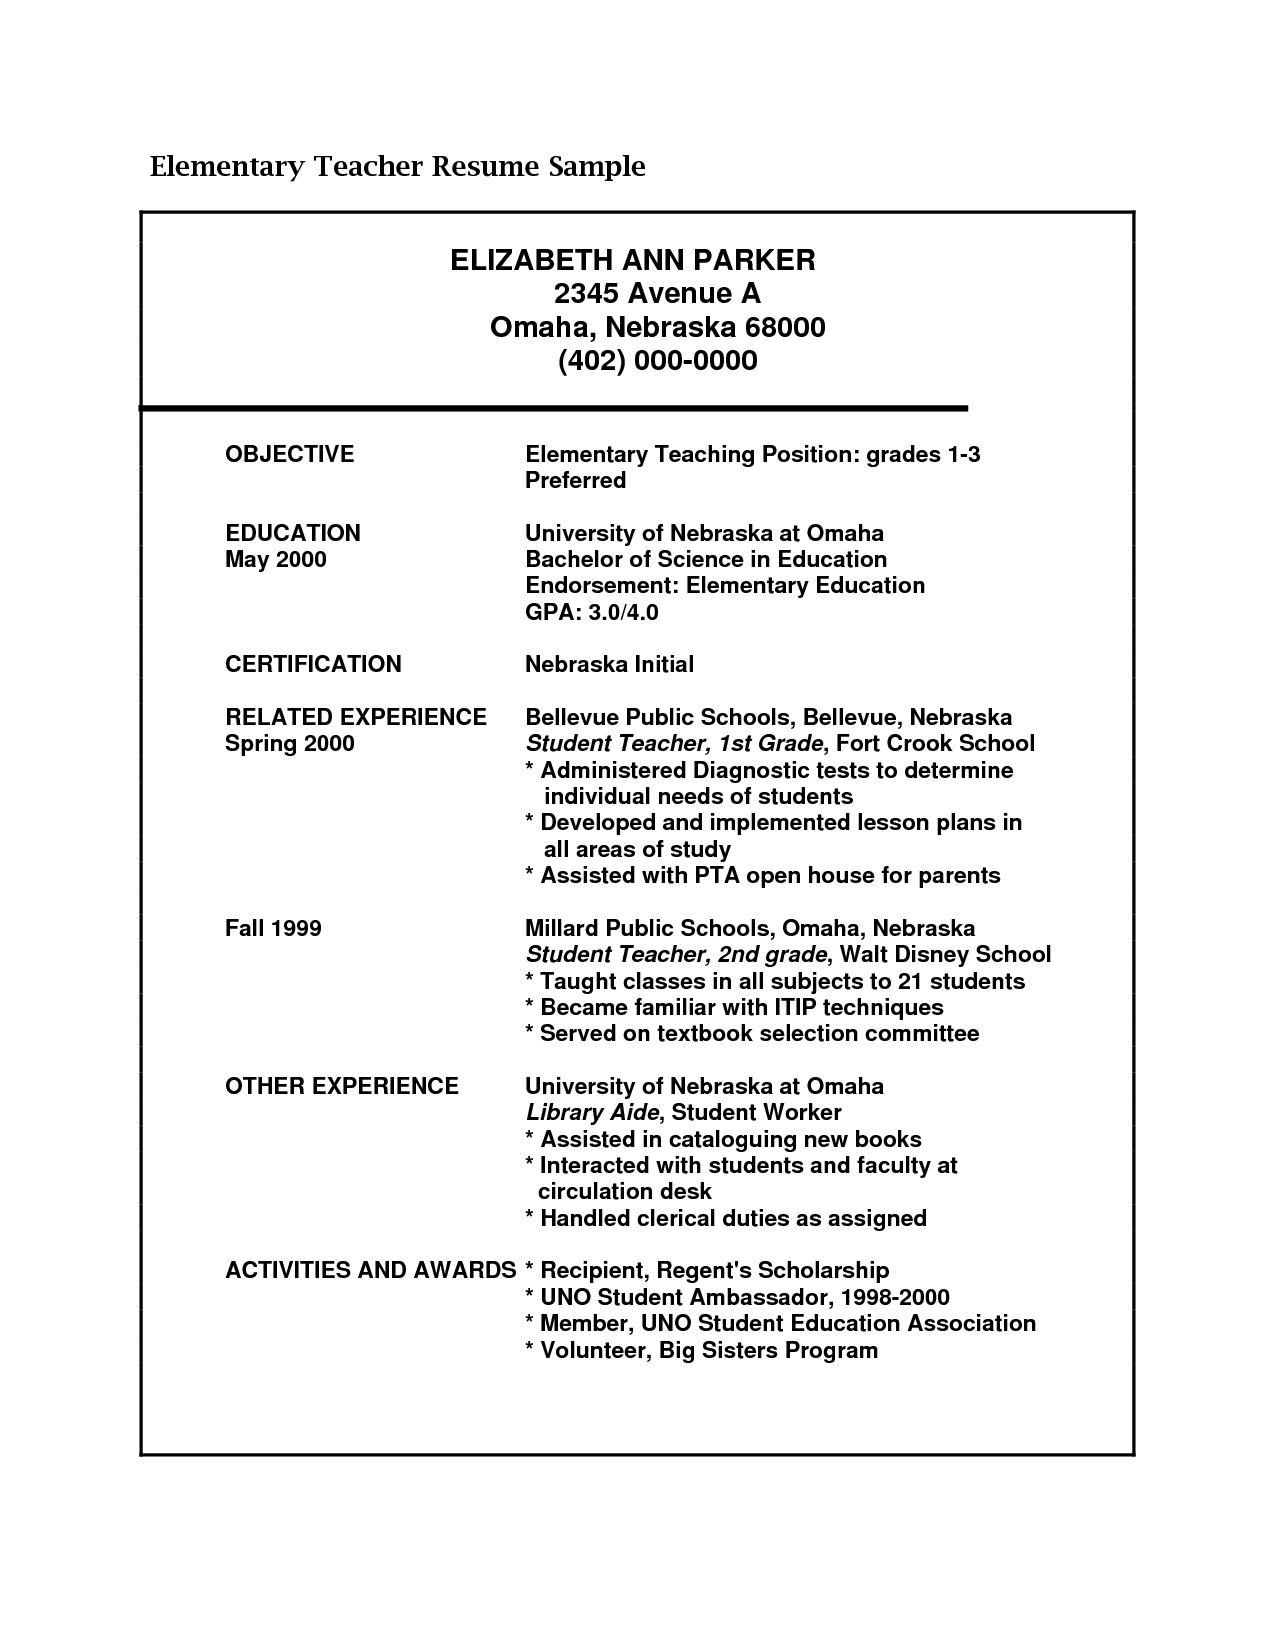 Resume Education Example Brilliant Science Teacher Resume Objective  Httpwwwresumecareer Review